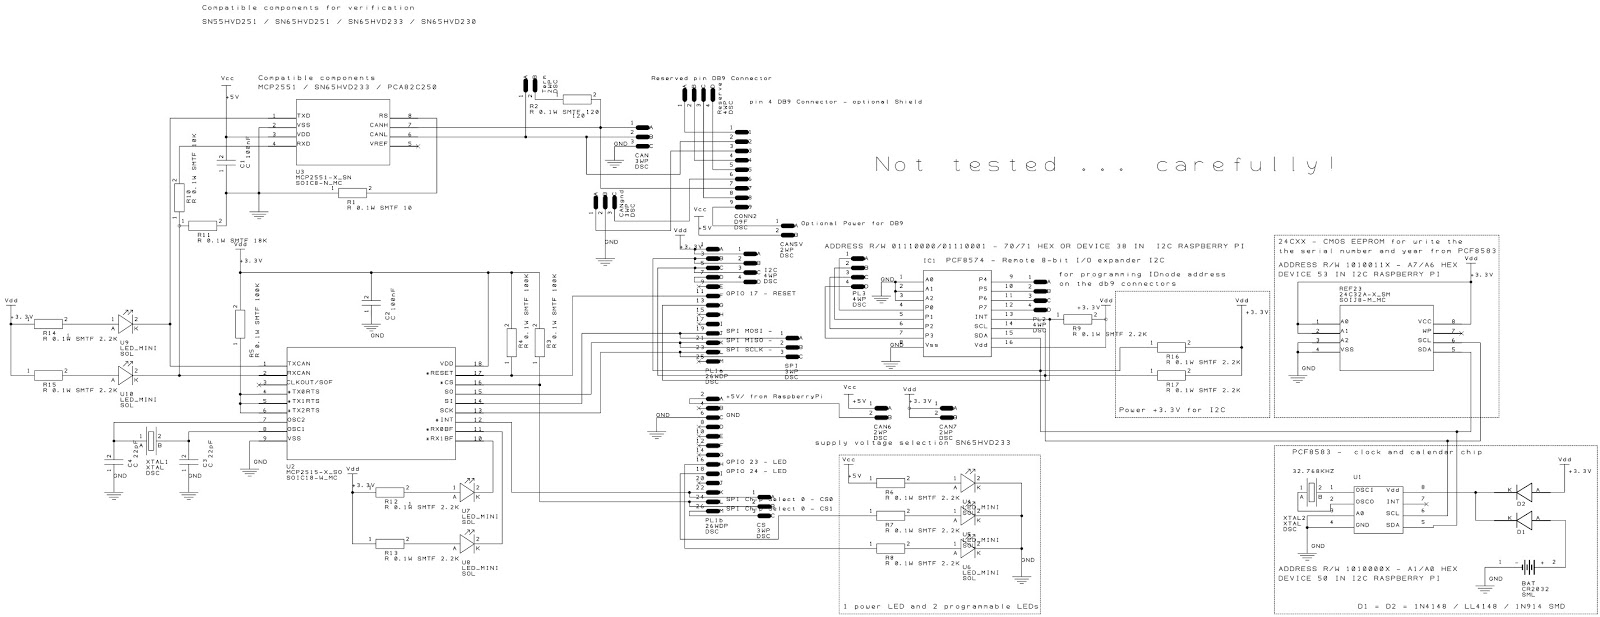 raspberry pi can board controller area network can mcp2515 forschematic design of pcb board [ 1600 x 617 Pixel ]